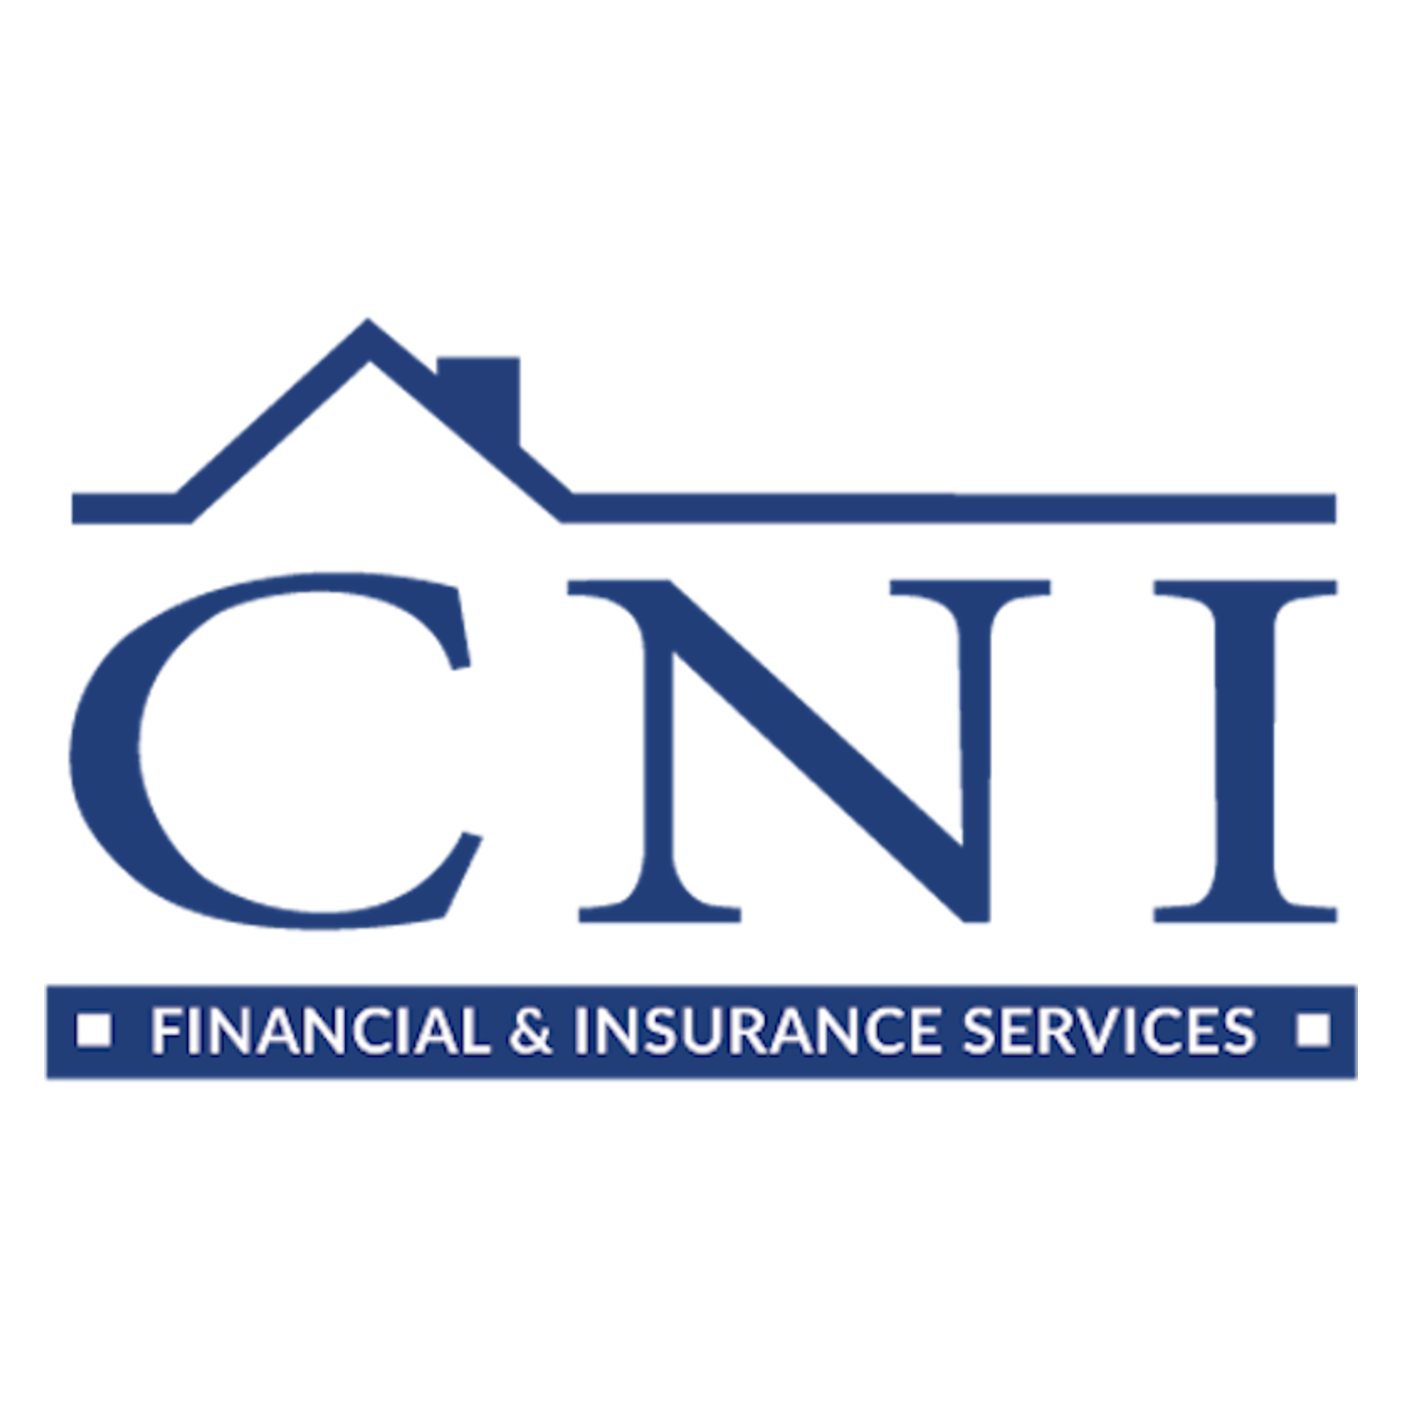 CNI Financial & Insurance Services